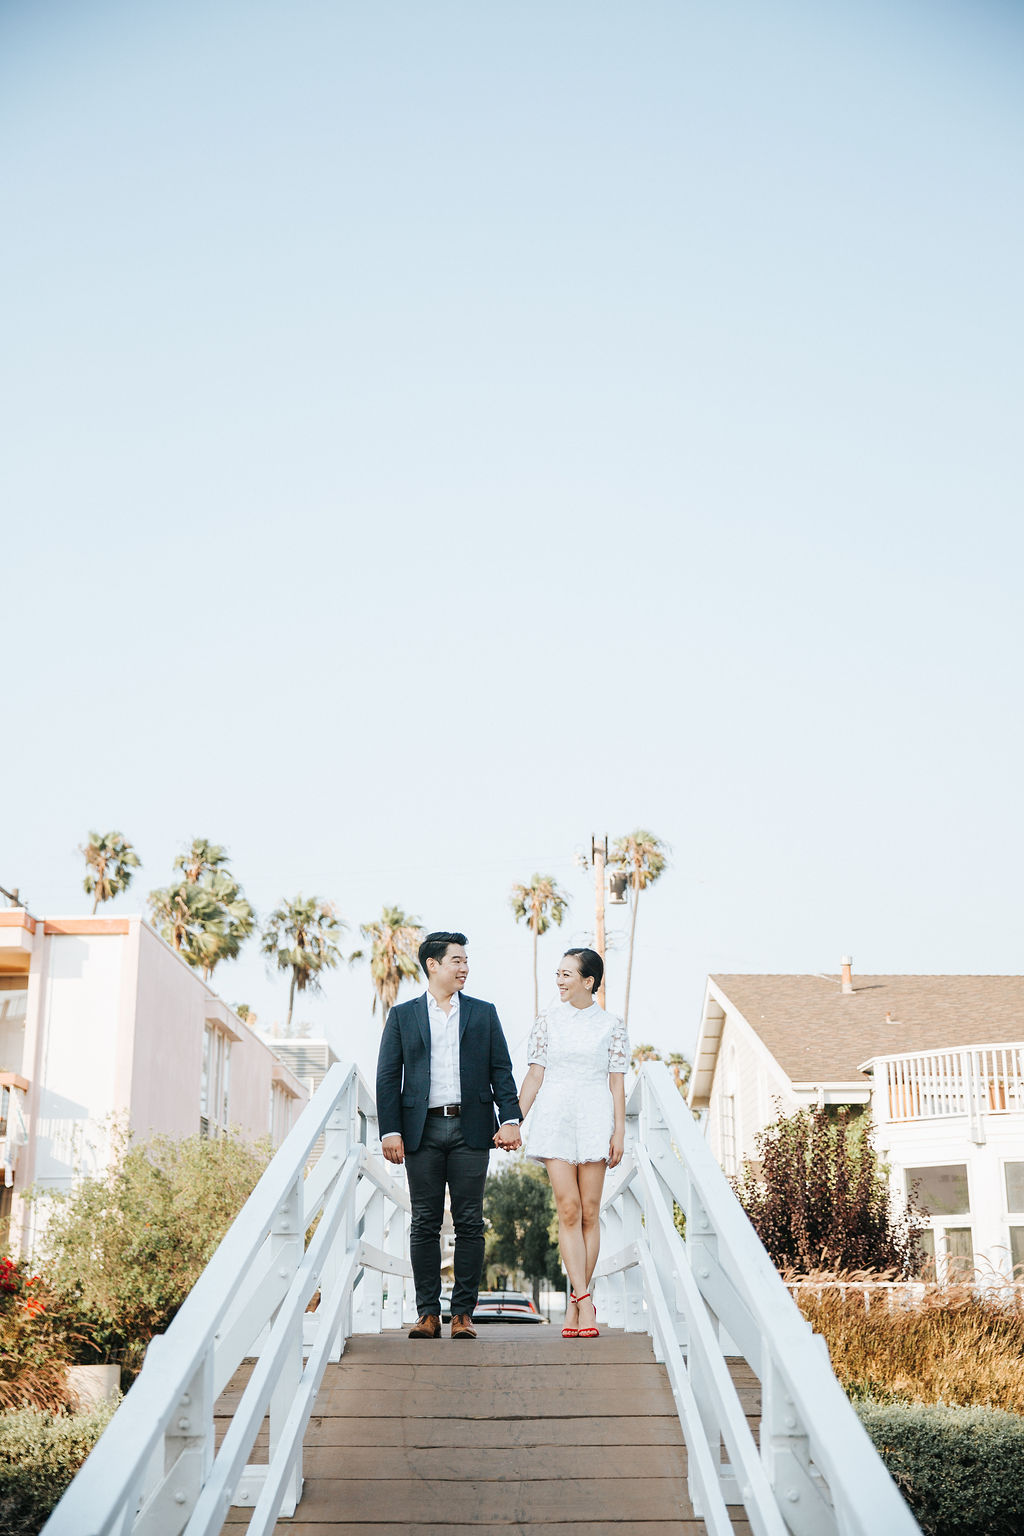 Venice Canals Engagement Photography 6 Los Angeles Orange County Wedding Photographer Joy Theory Co